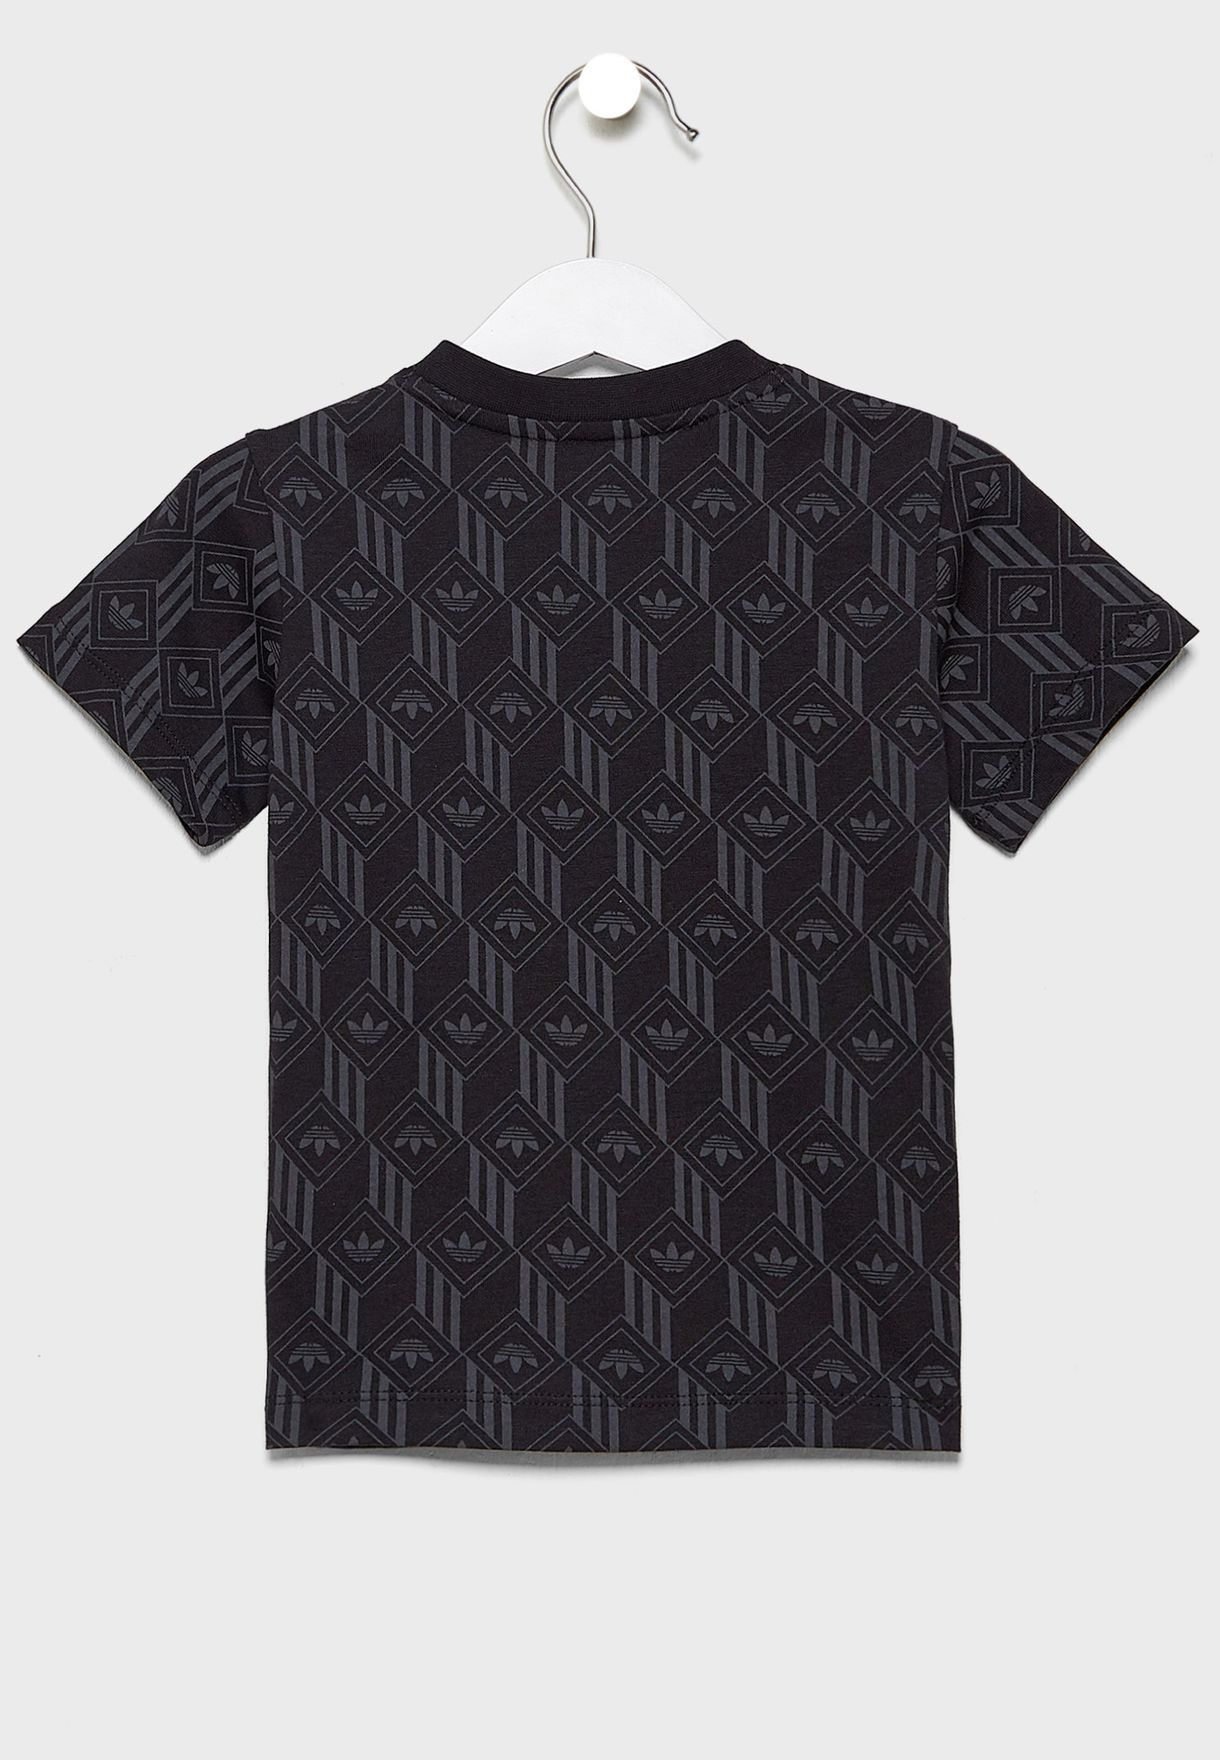 Trefoil All Over Print Casual Kids T-Shirt